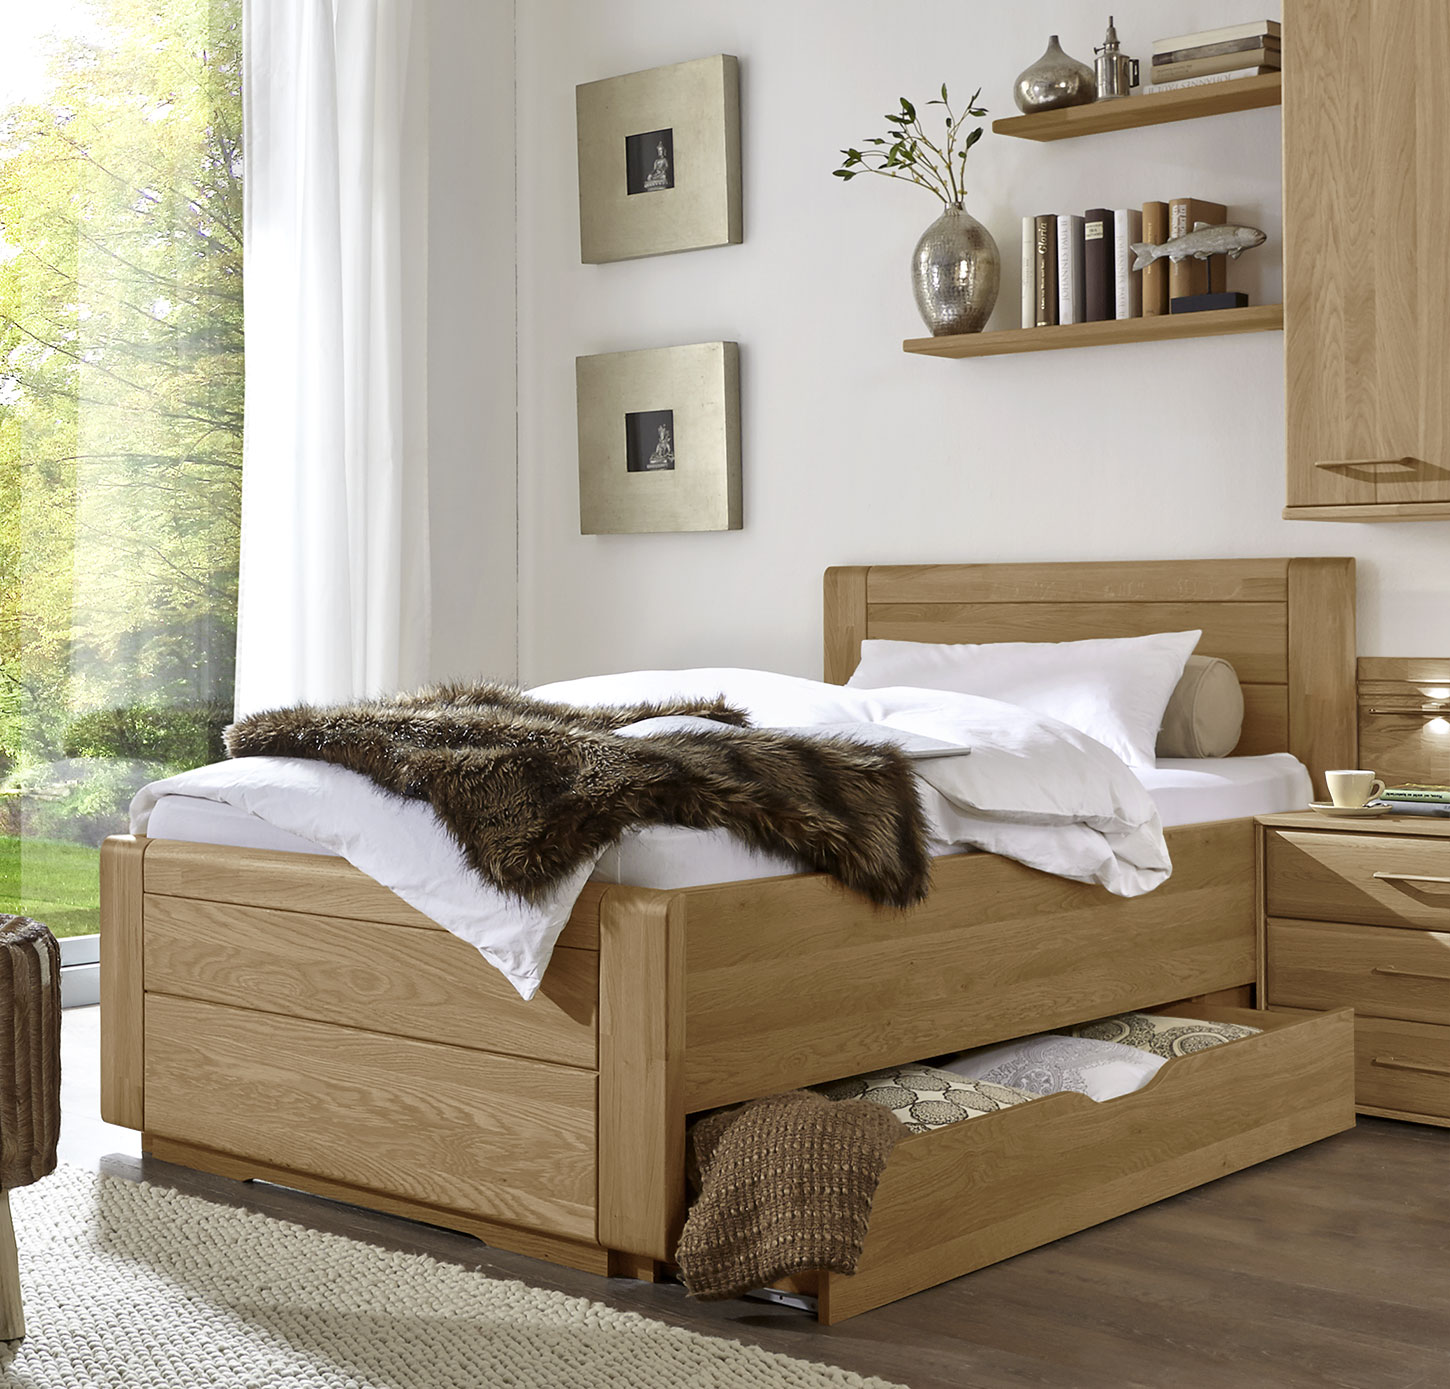 einzelbett landhausstil mit schubladen eiche teilmassiv raida. Black Bedroom Furniture Sets. Home Design Ideas